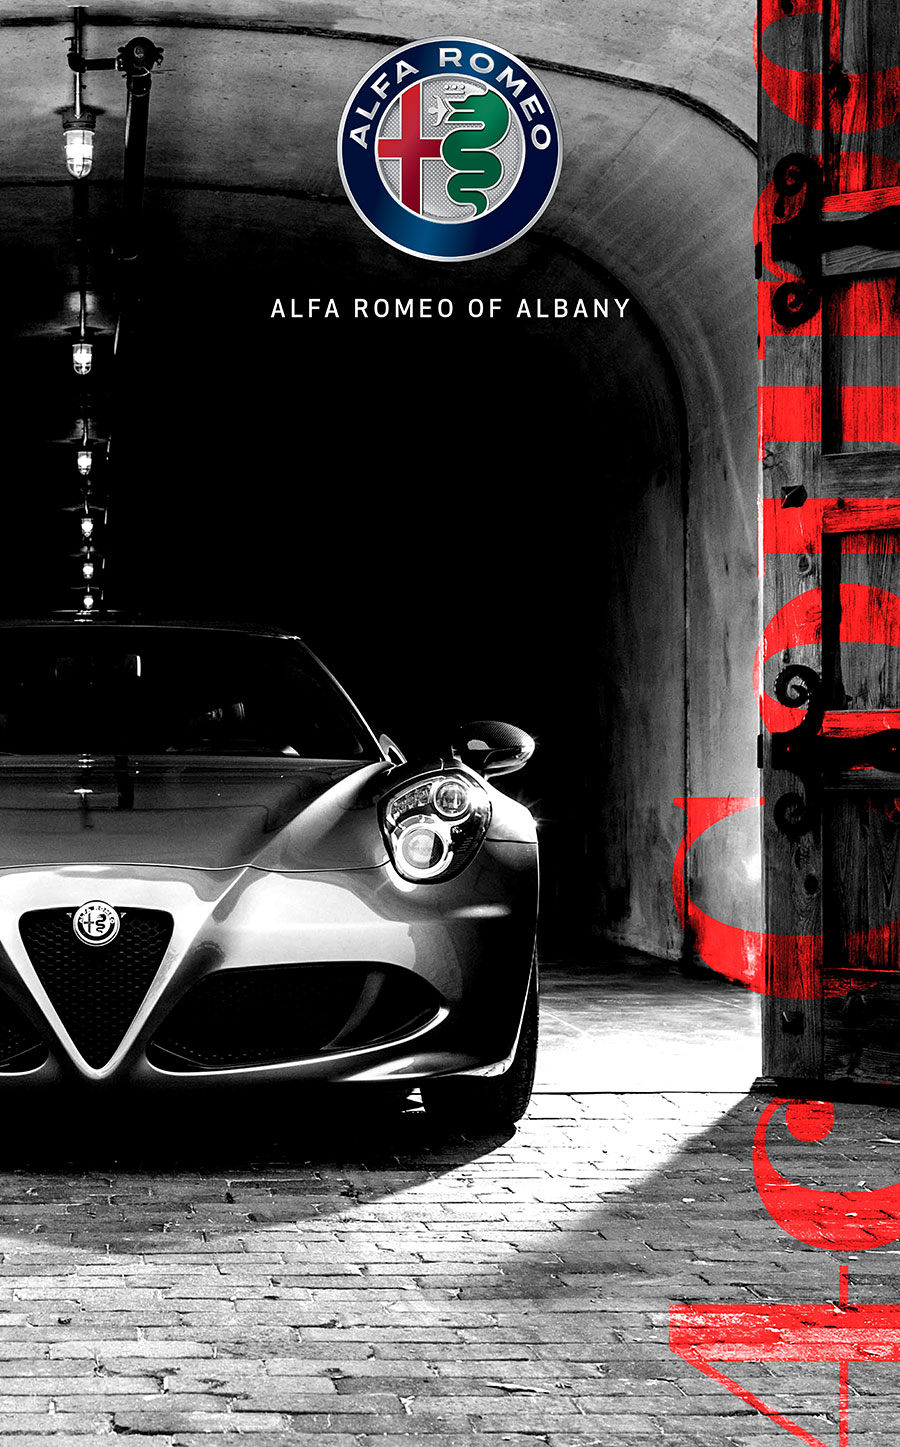 alfa romeo of albany elevation ten thousand alfa romeo of albany elevation ten